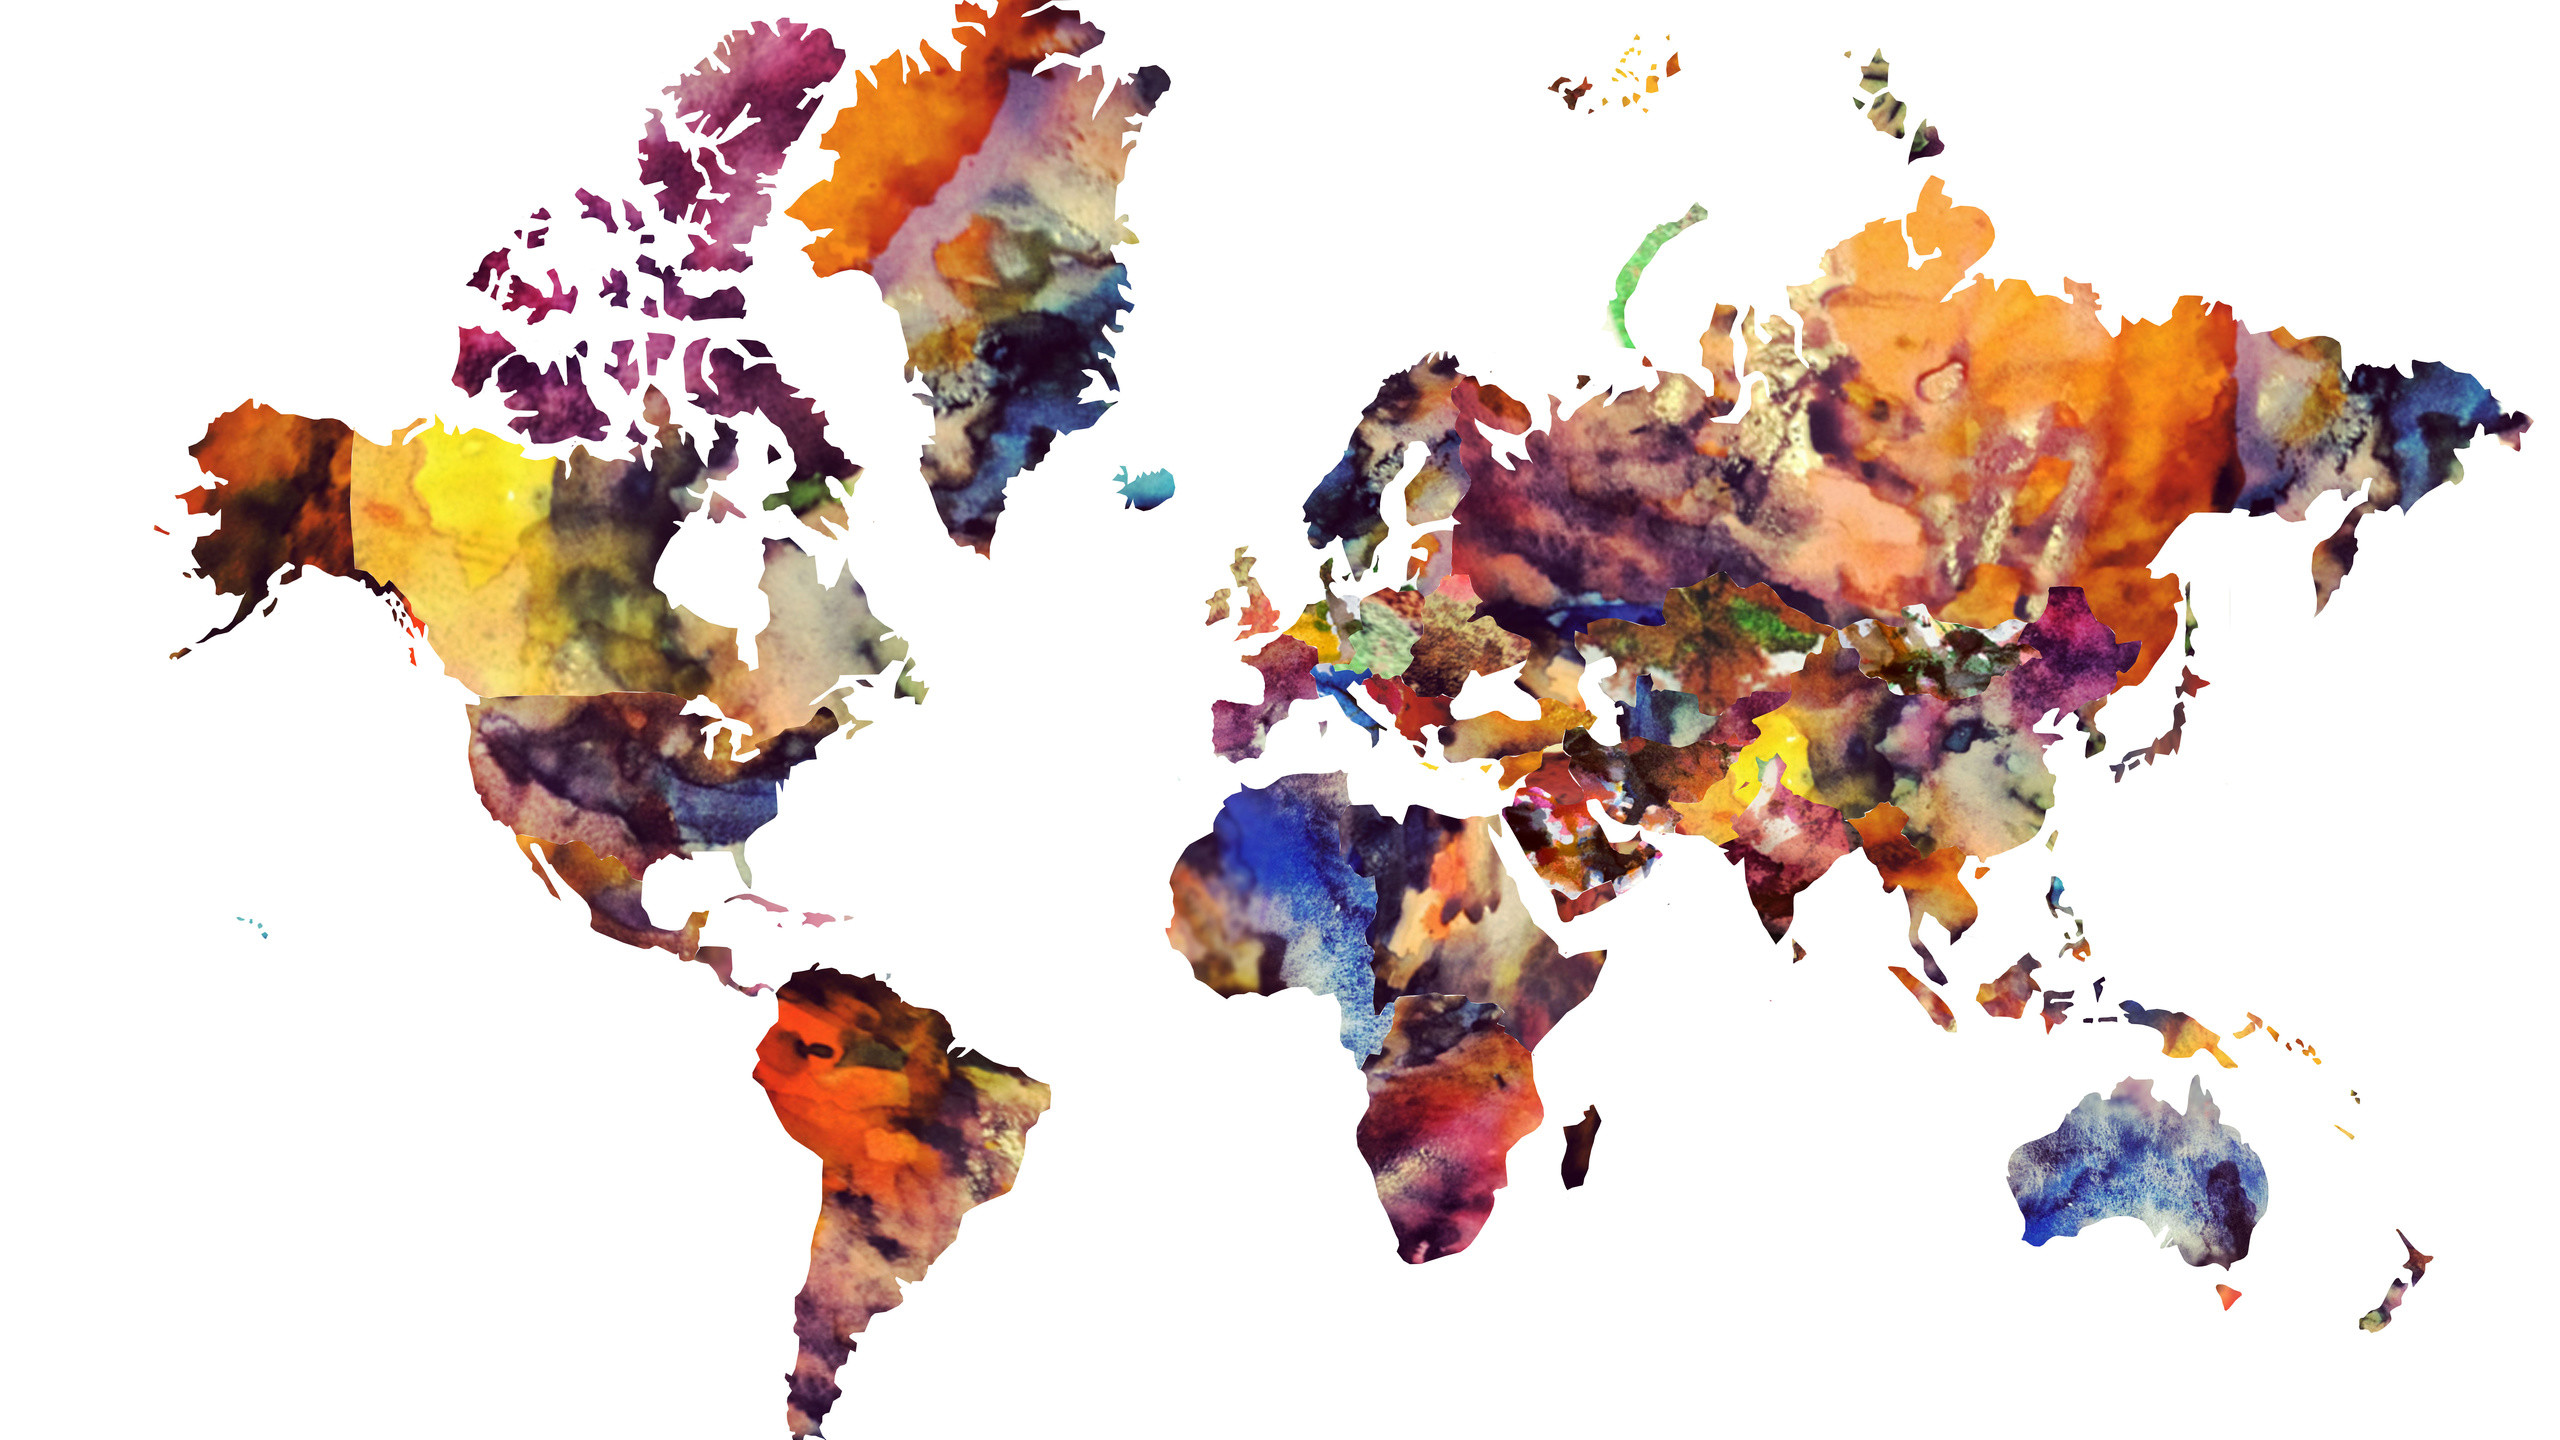 World map desktop wallpaper hd 70 images 2560x1600 world map hd wallpaper 2560x1600 download gumiabroncs Choice Image